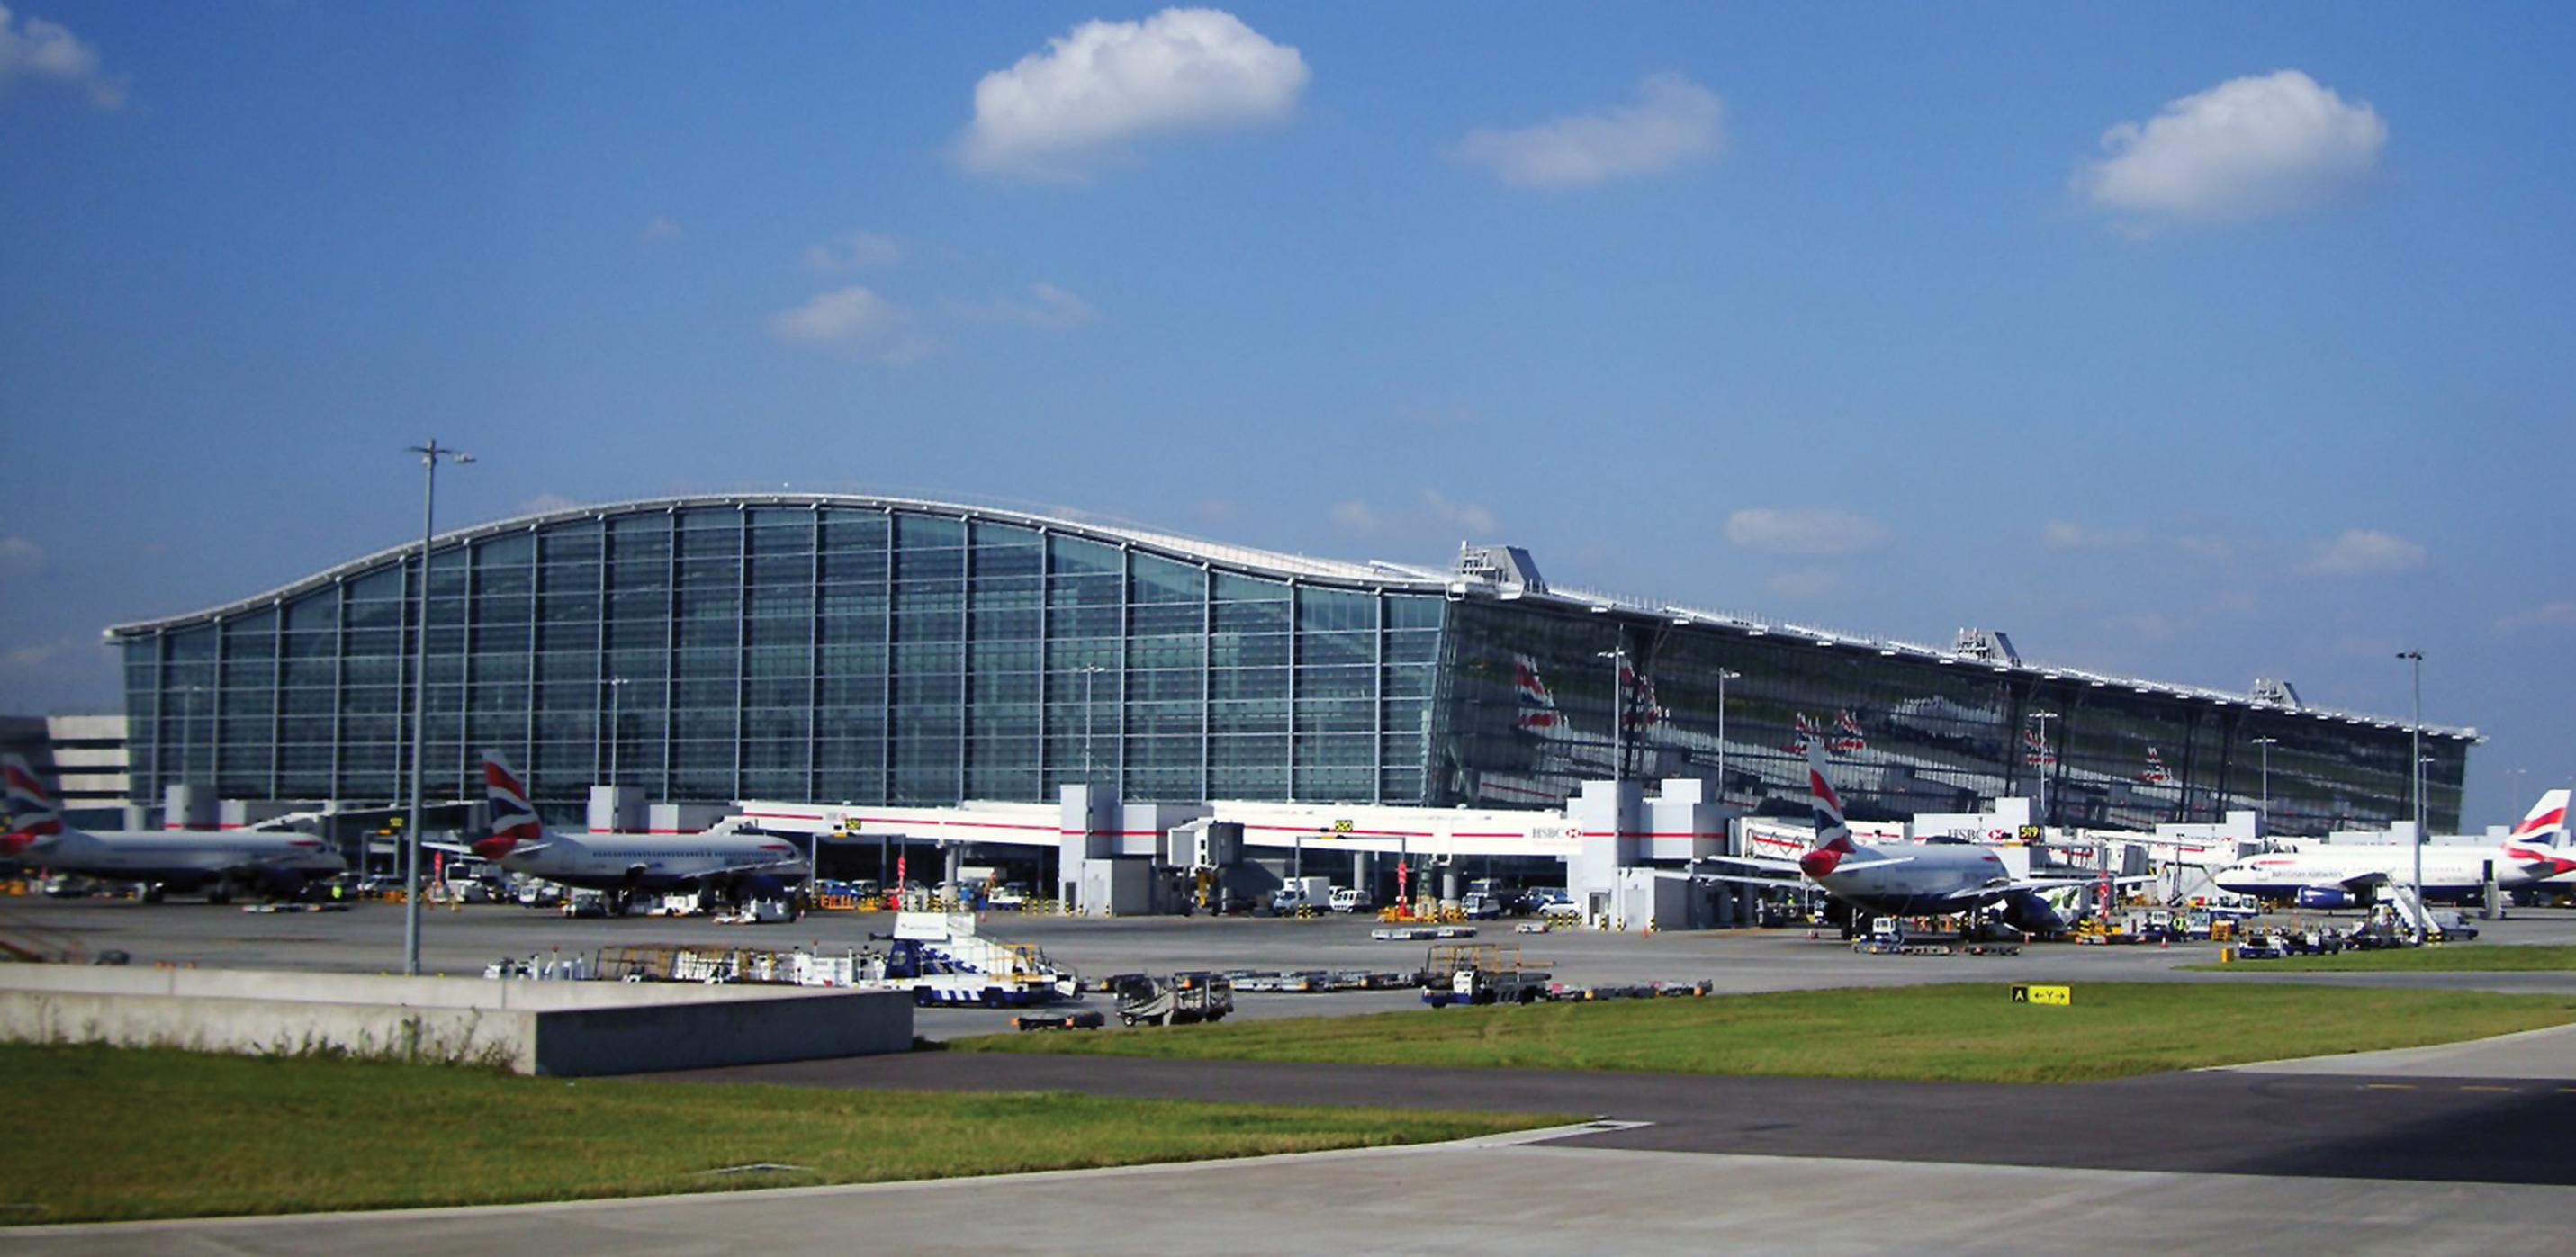 Heathrow Airport's owners are promoting expansion through a complex legal landscape